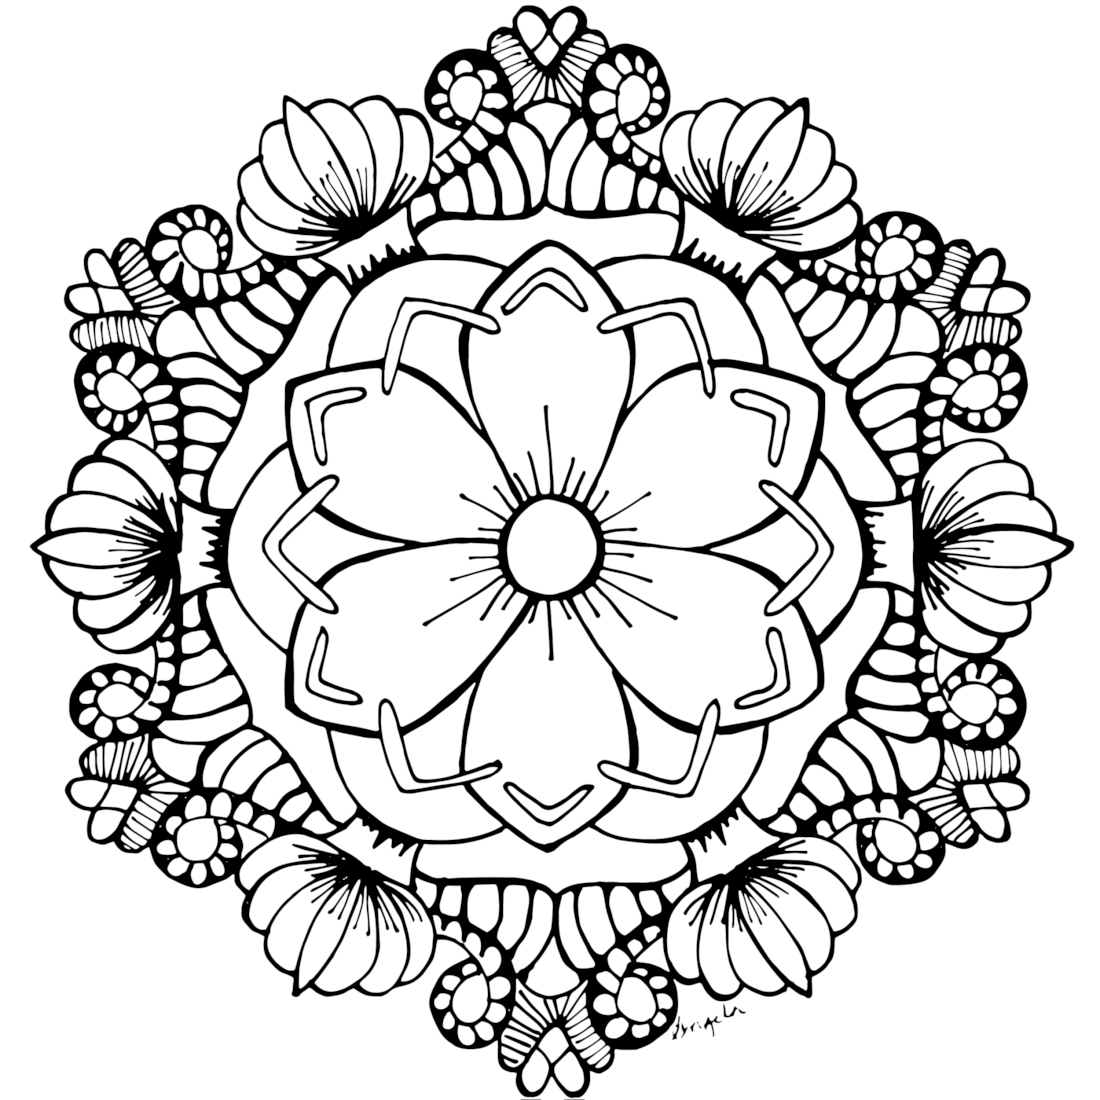 Flower Mandala Coloring Page to Print